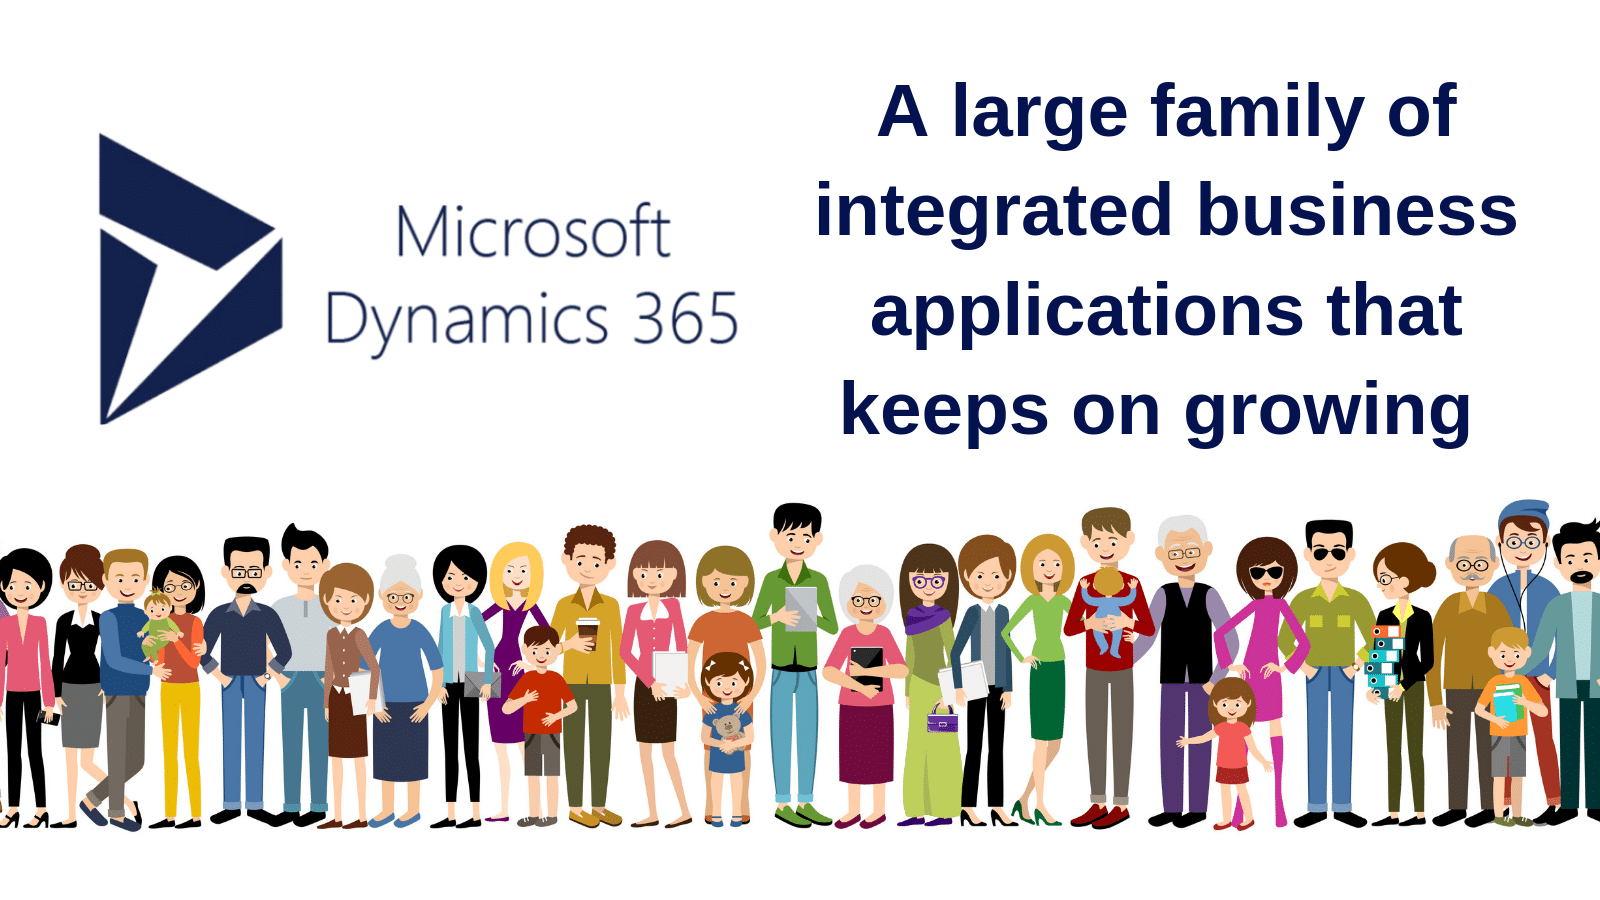 Dynamics 365: A large family of integrated business applications that keeps on growing